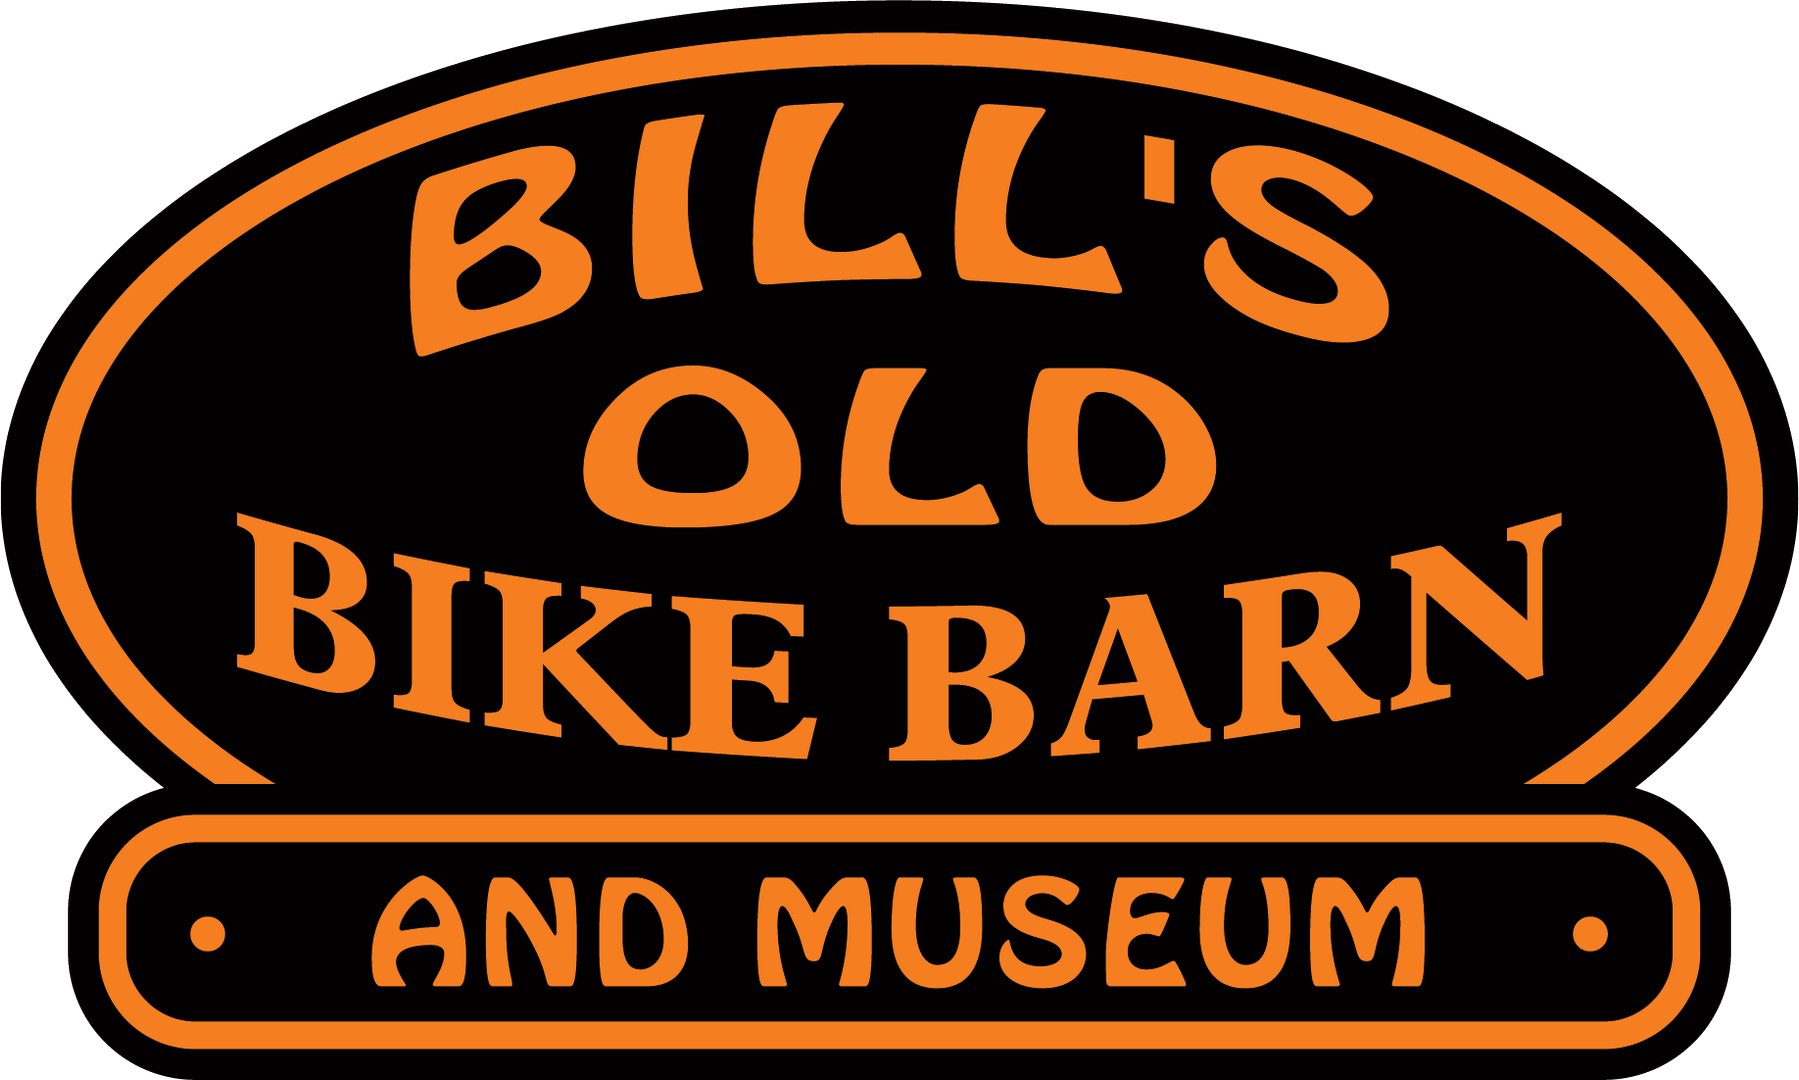 Bill's Bike Barn